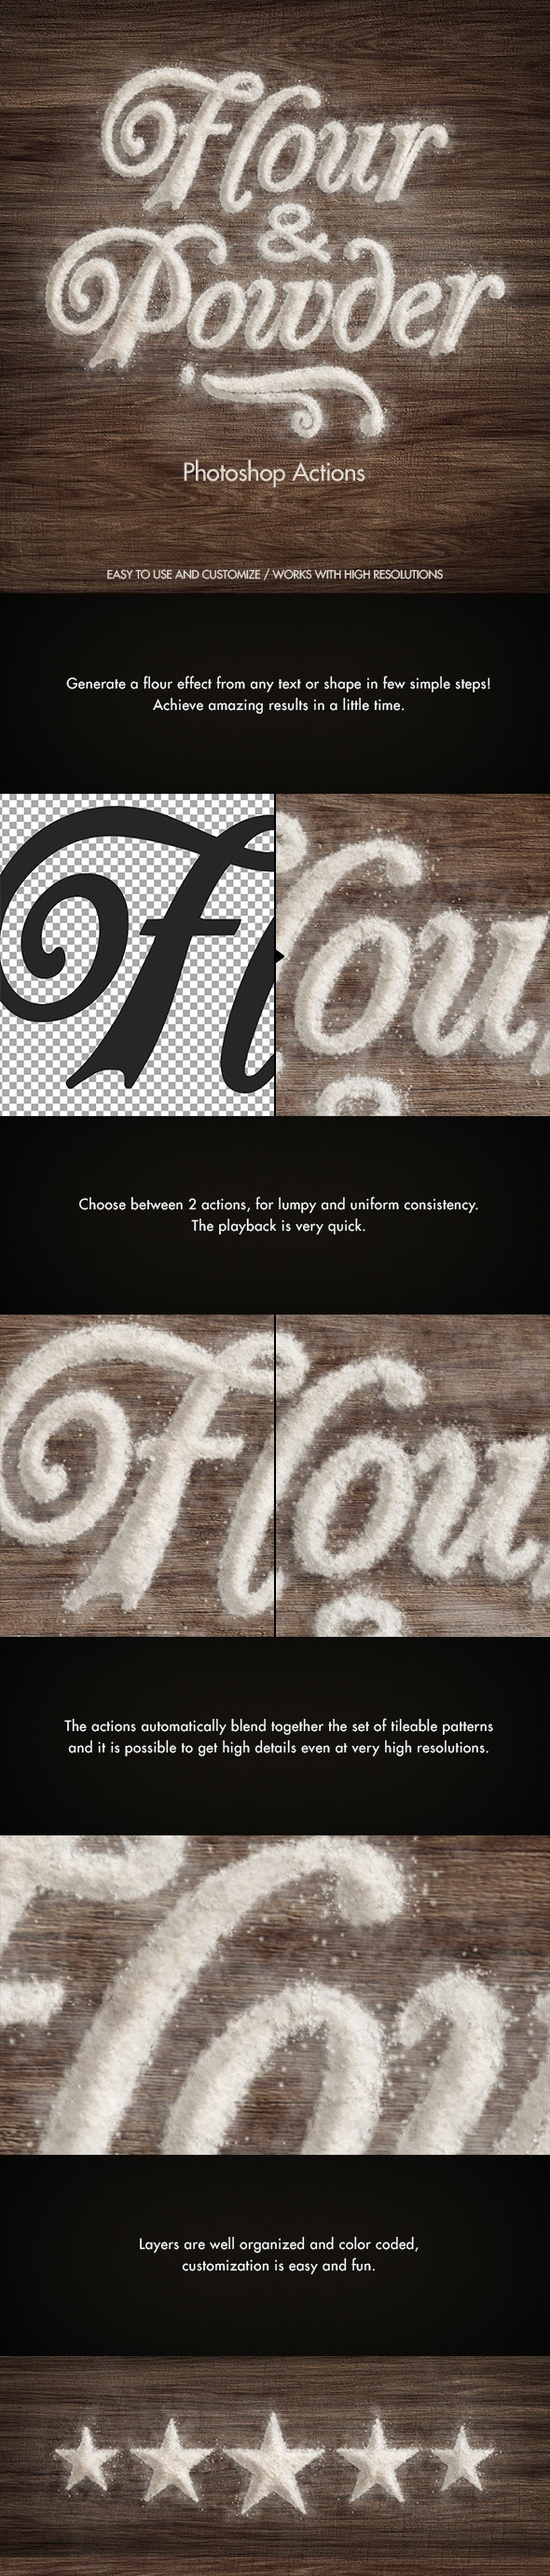 Flour & Powder - Photoshop Actions - Photoshop Add-ons